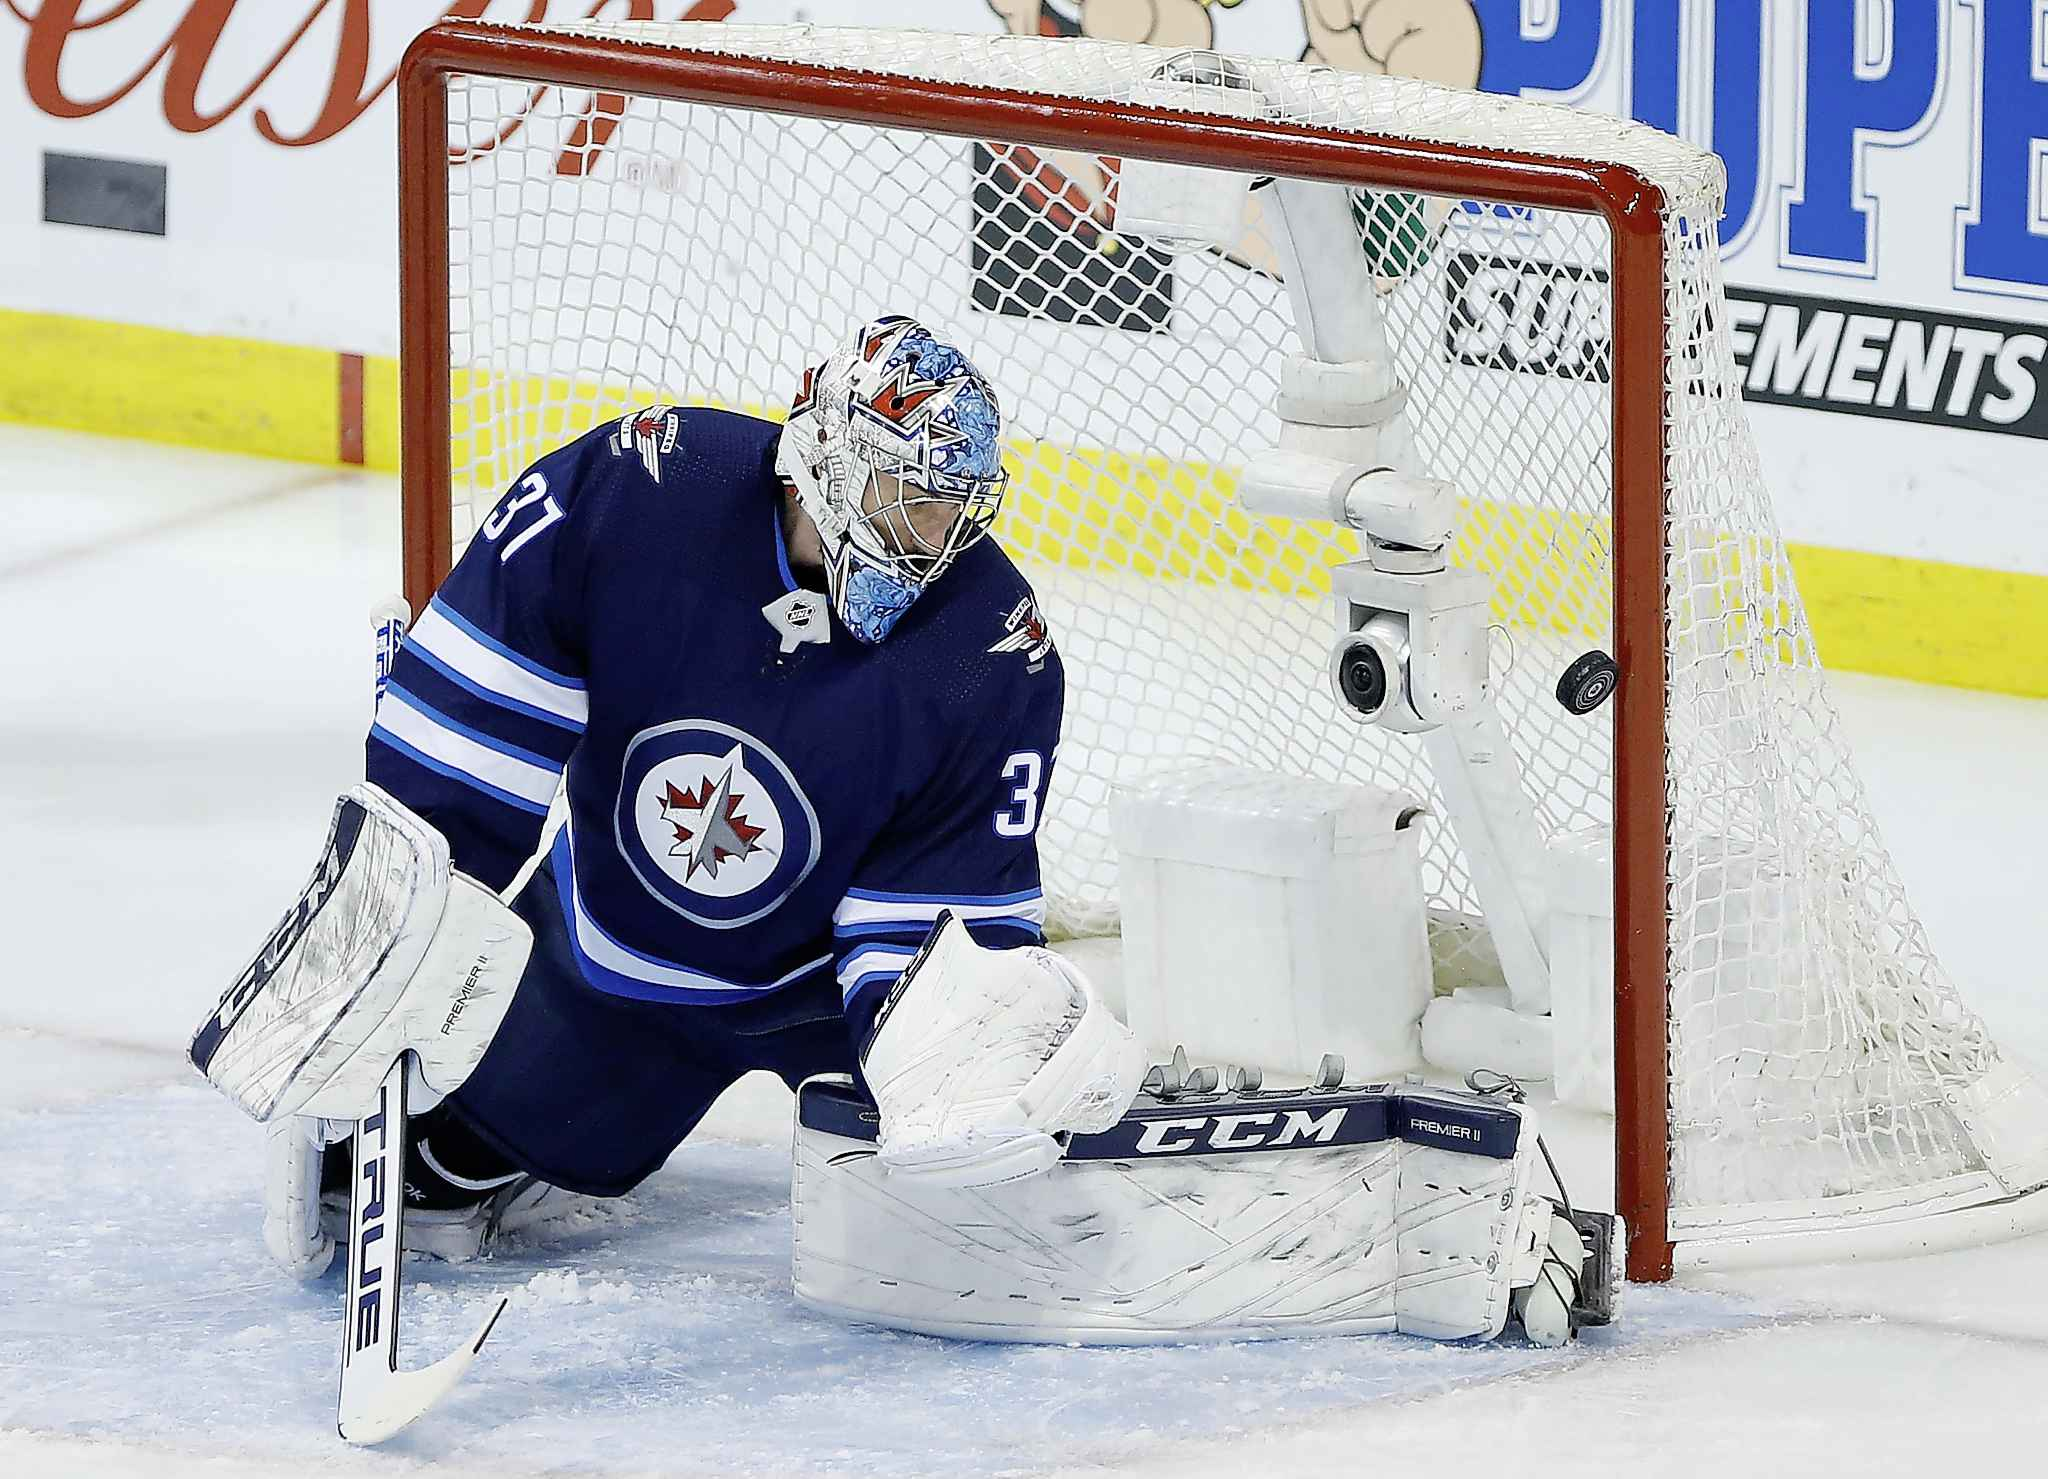 "JOHN WOODS / THE CANADIAN PRESS</p> <p>Winnipeg Jets goaltender Connor Hellebuyck (37) watches as a Montreal Canadiens' shot goes off the post during first period NHL action in Winnipeg on Saturday, March 28, 2019.</p> <p>""></a><figcaption readability="